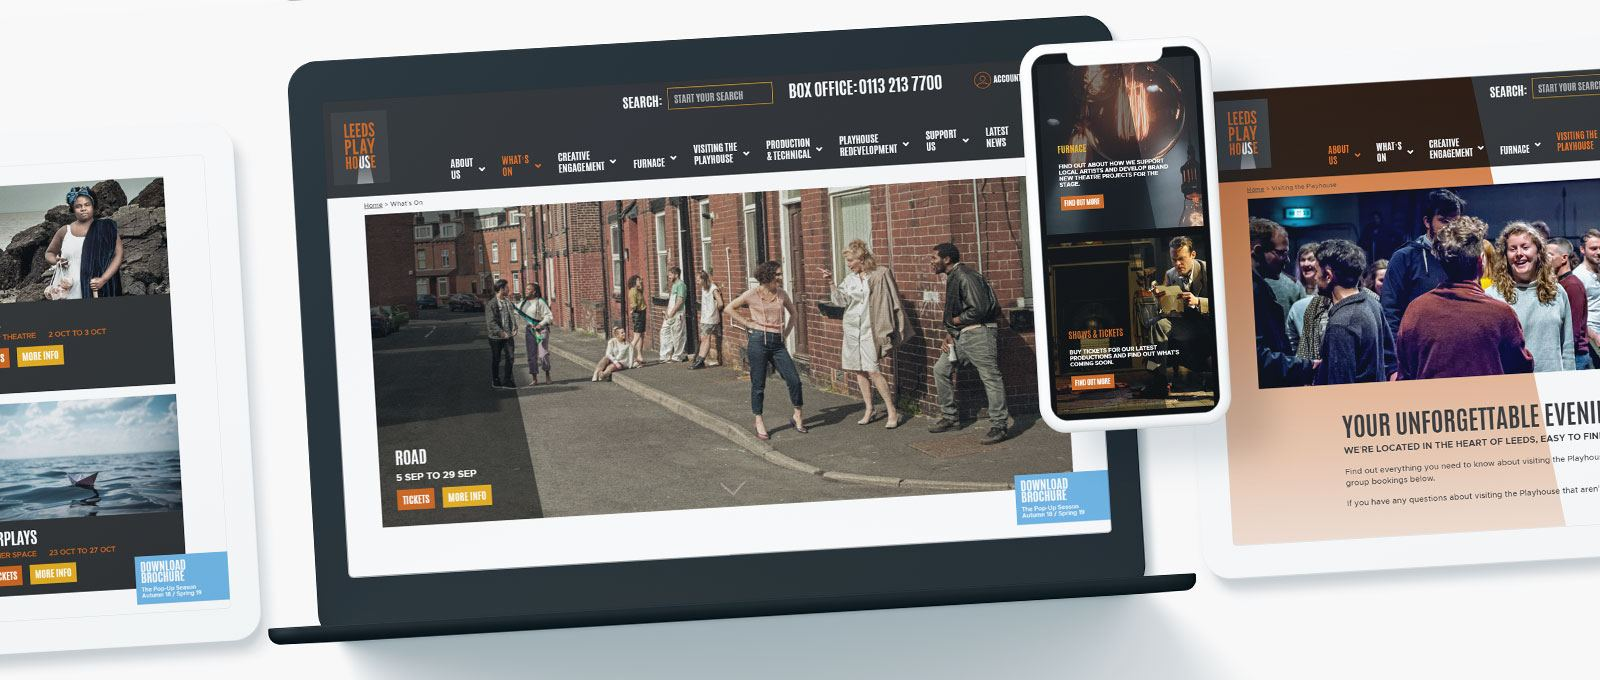 Leeds Playhouse Website design and build